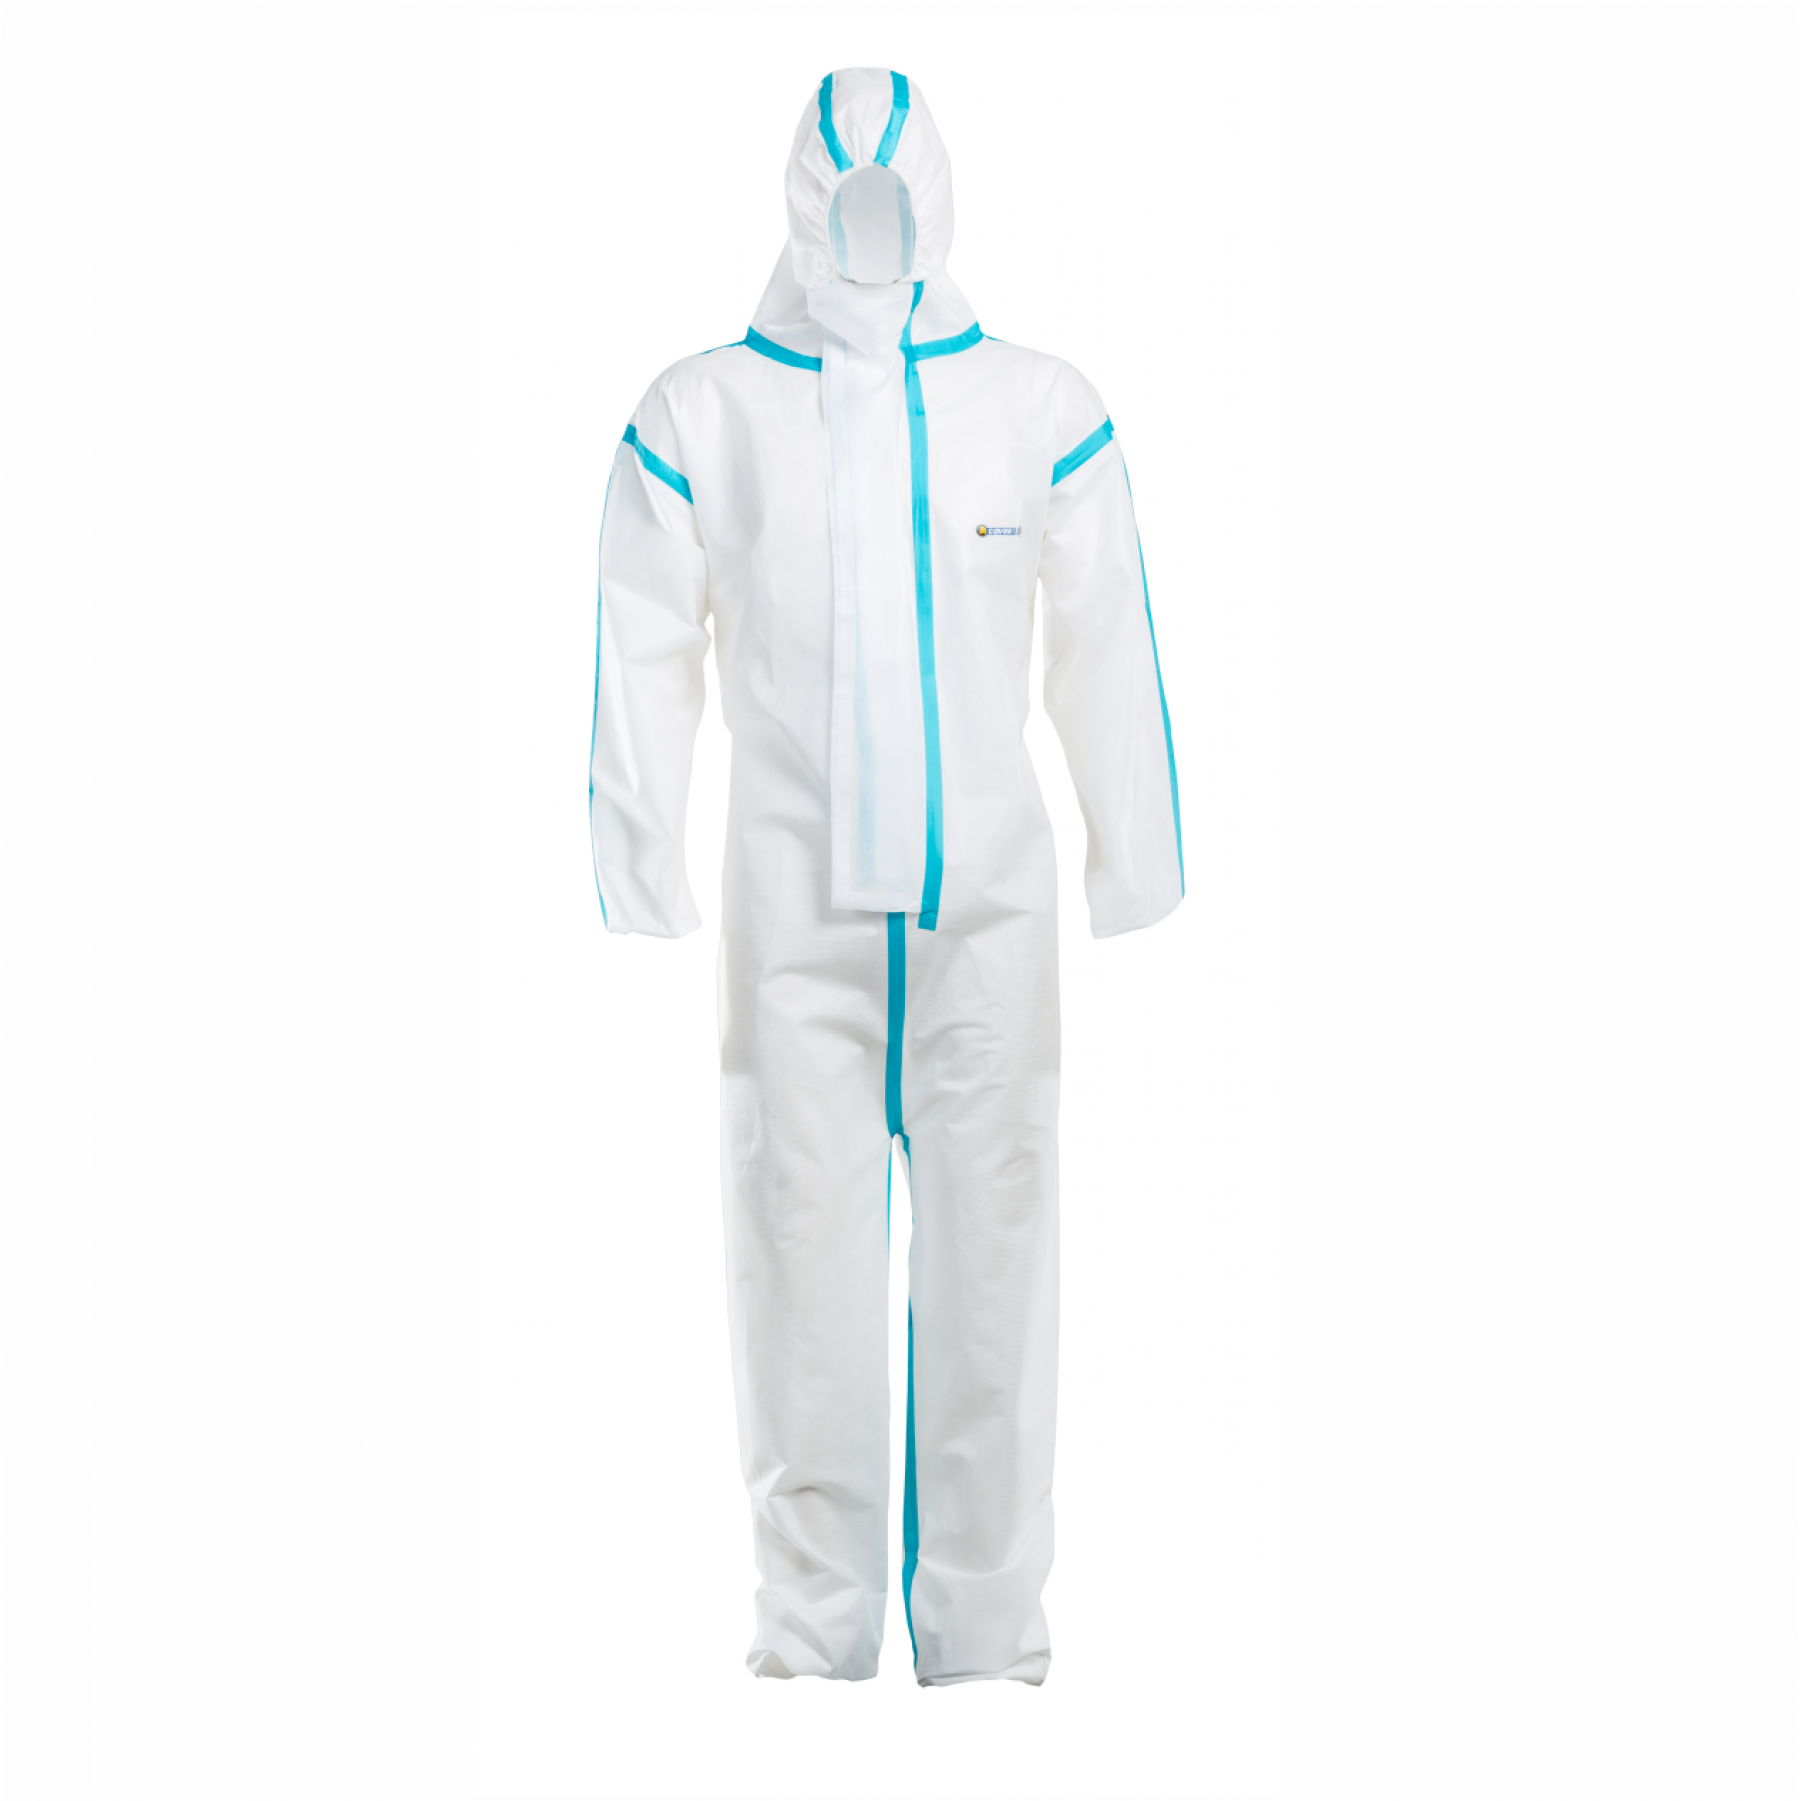 Coverstar Super Seal  White Disposable Suit, Size 2xl